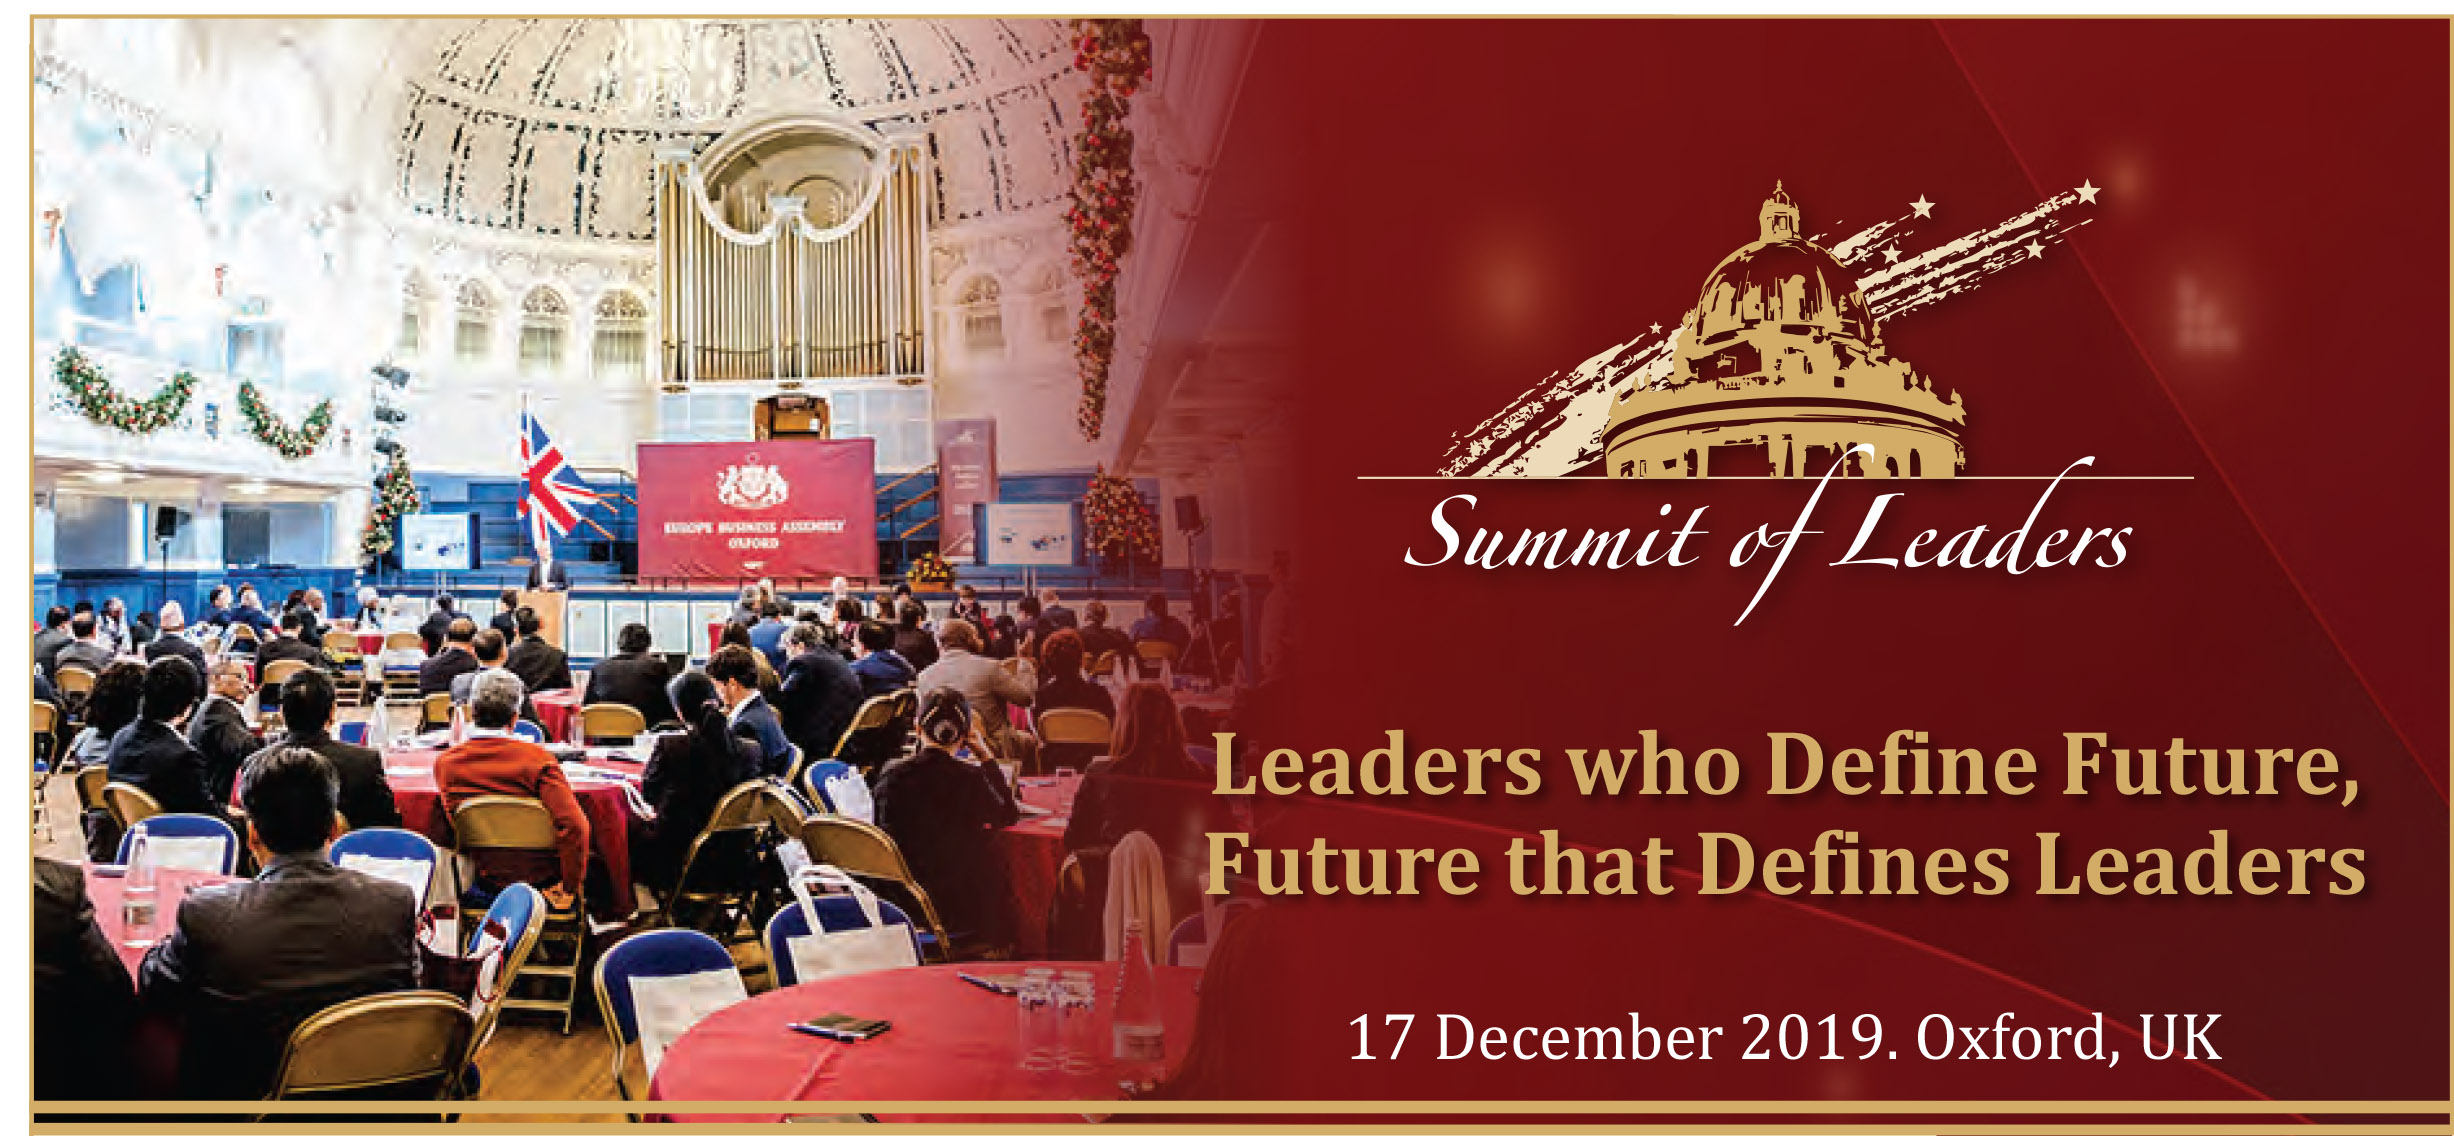 Summit of Leaders – 2019 'Leaders who Define Future, Future that Defines Leaders'